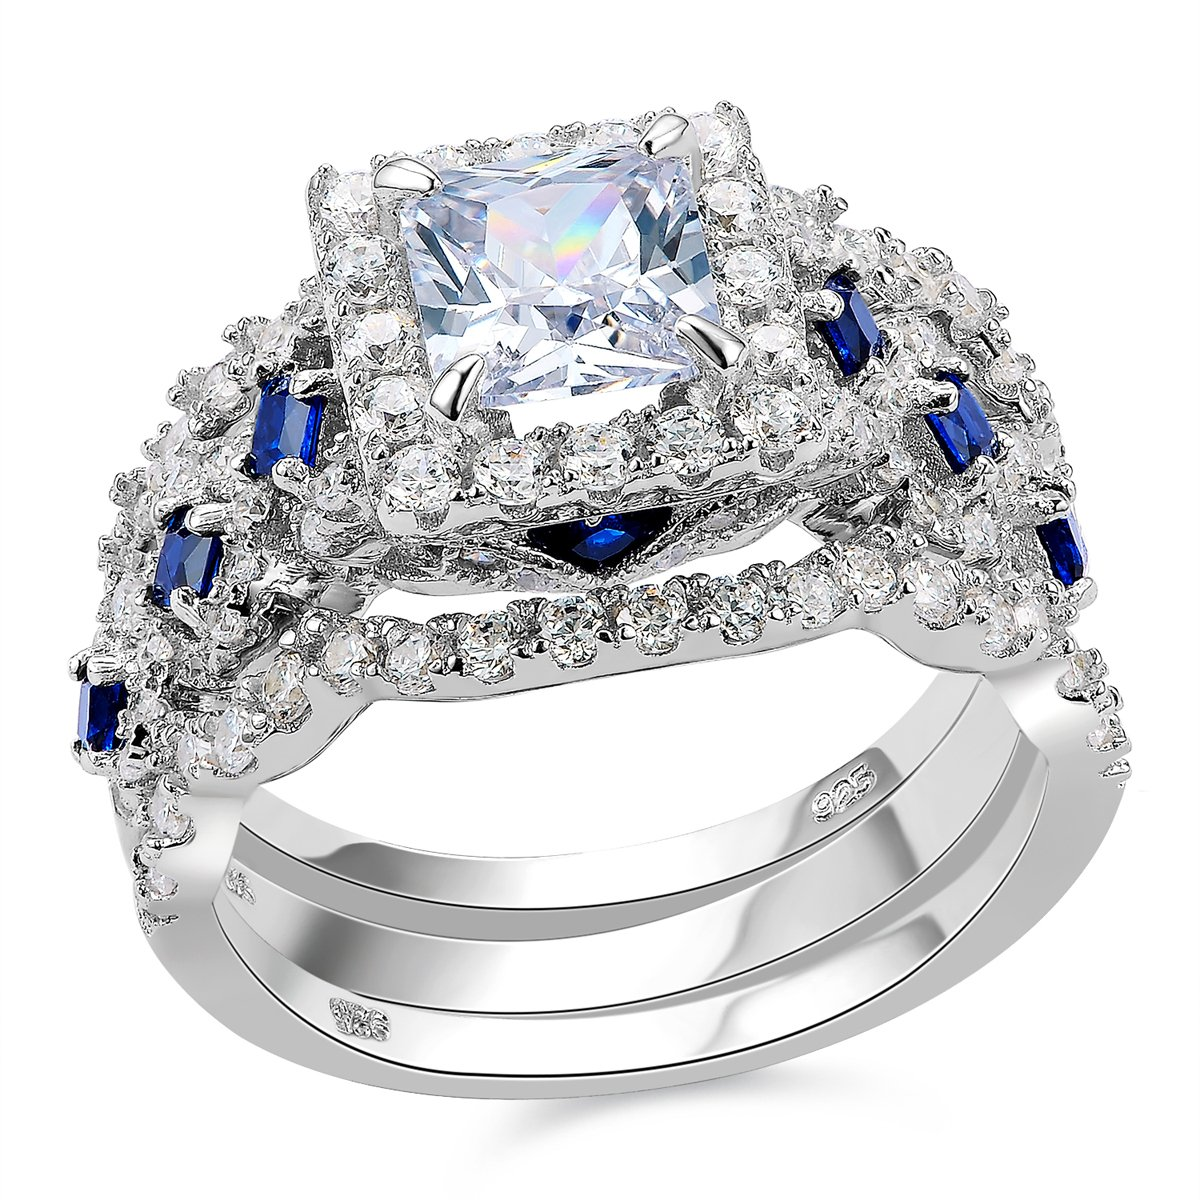 Newshe Engagement Wedding Ring Set 925 Sterling Silver 3pcs 2.5ct Princess White Cz Blue Size 5-10 Newshe Jewellery JR4972_SS